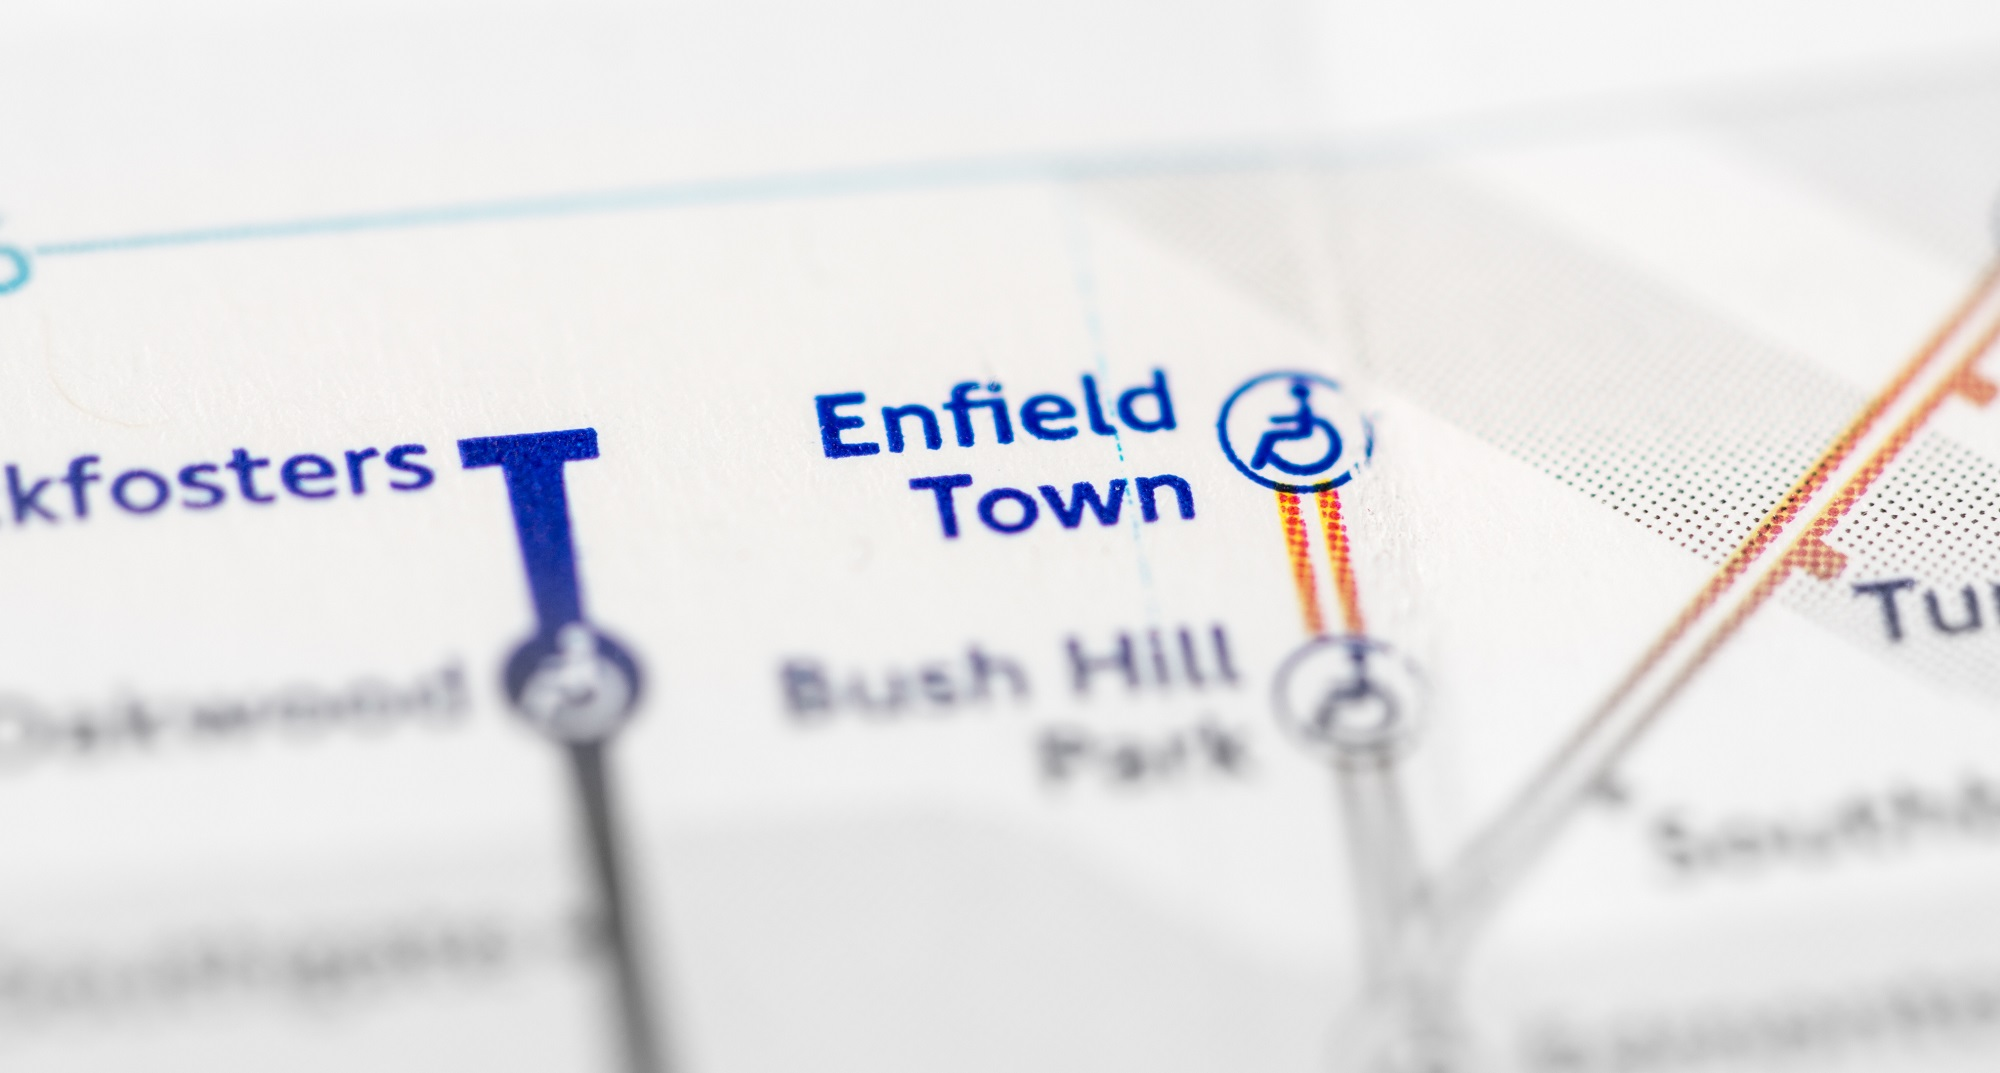 Everything you need to know about living in Enfield